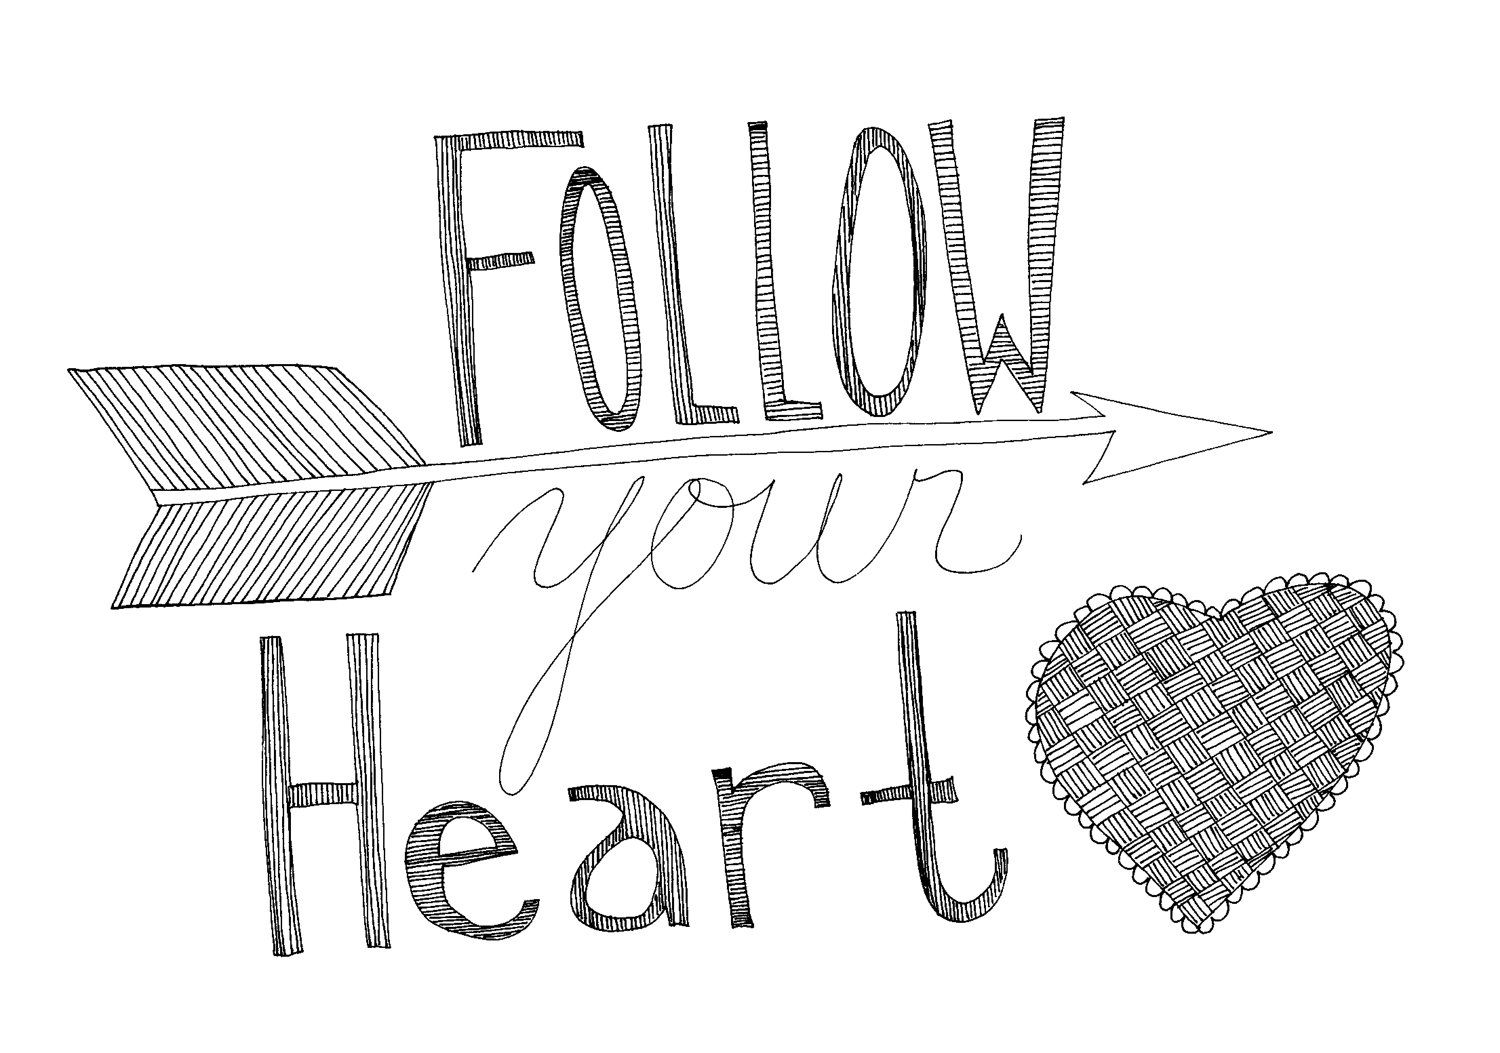 Inspirational Drawing Ideas: Follow Your Heart 8x10 Typography Inspirational Quote